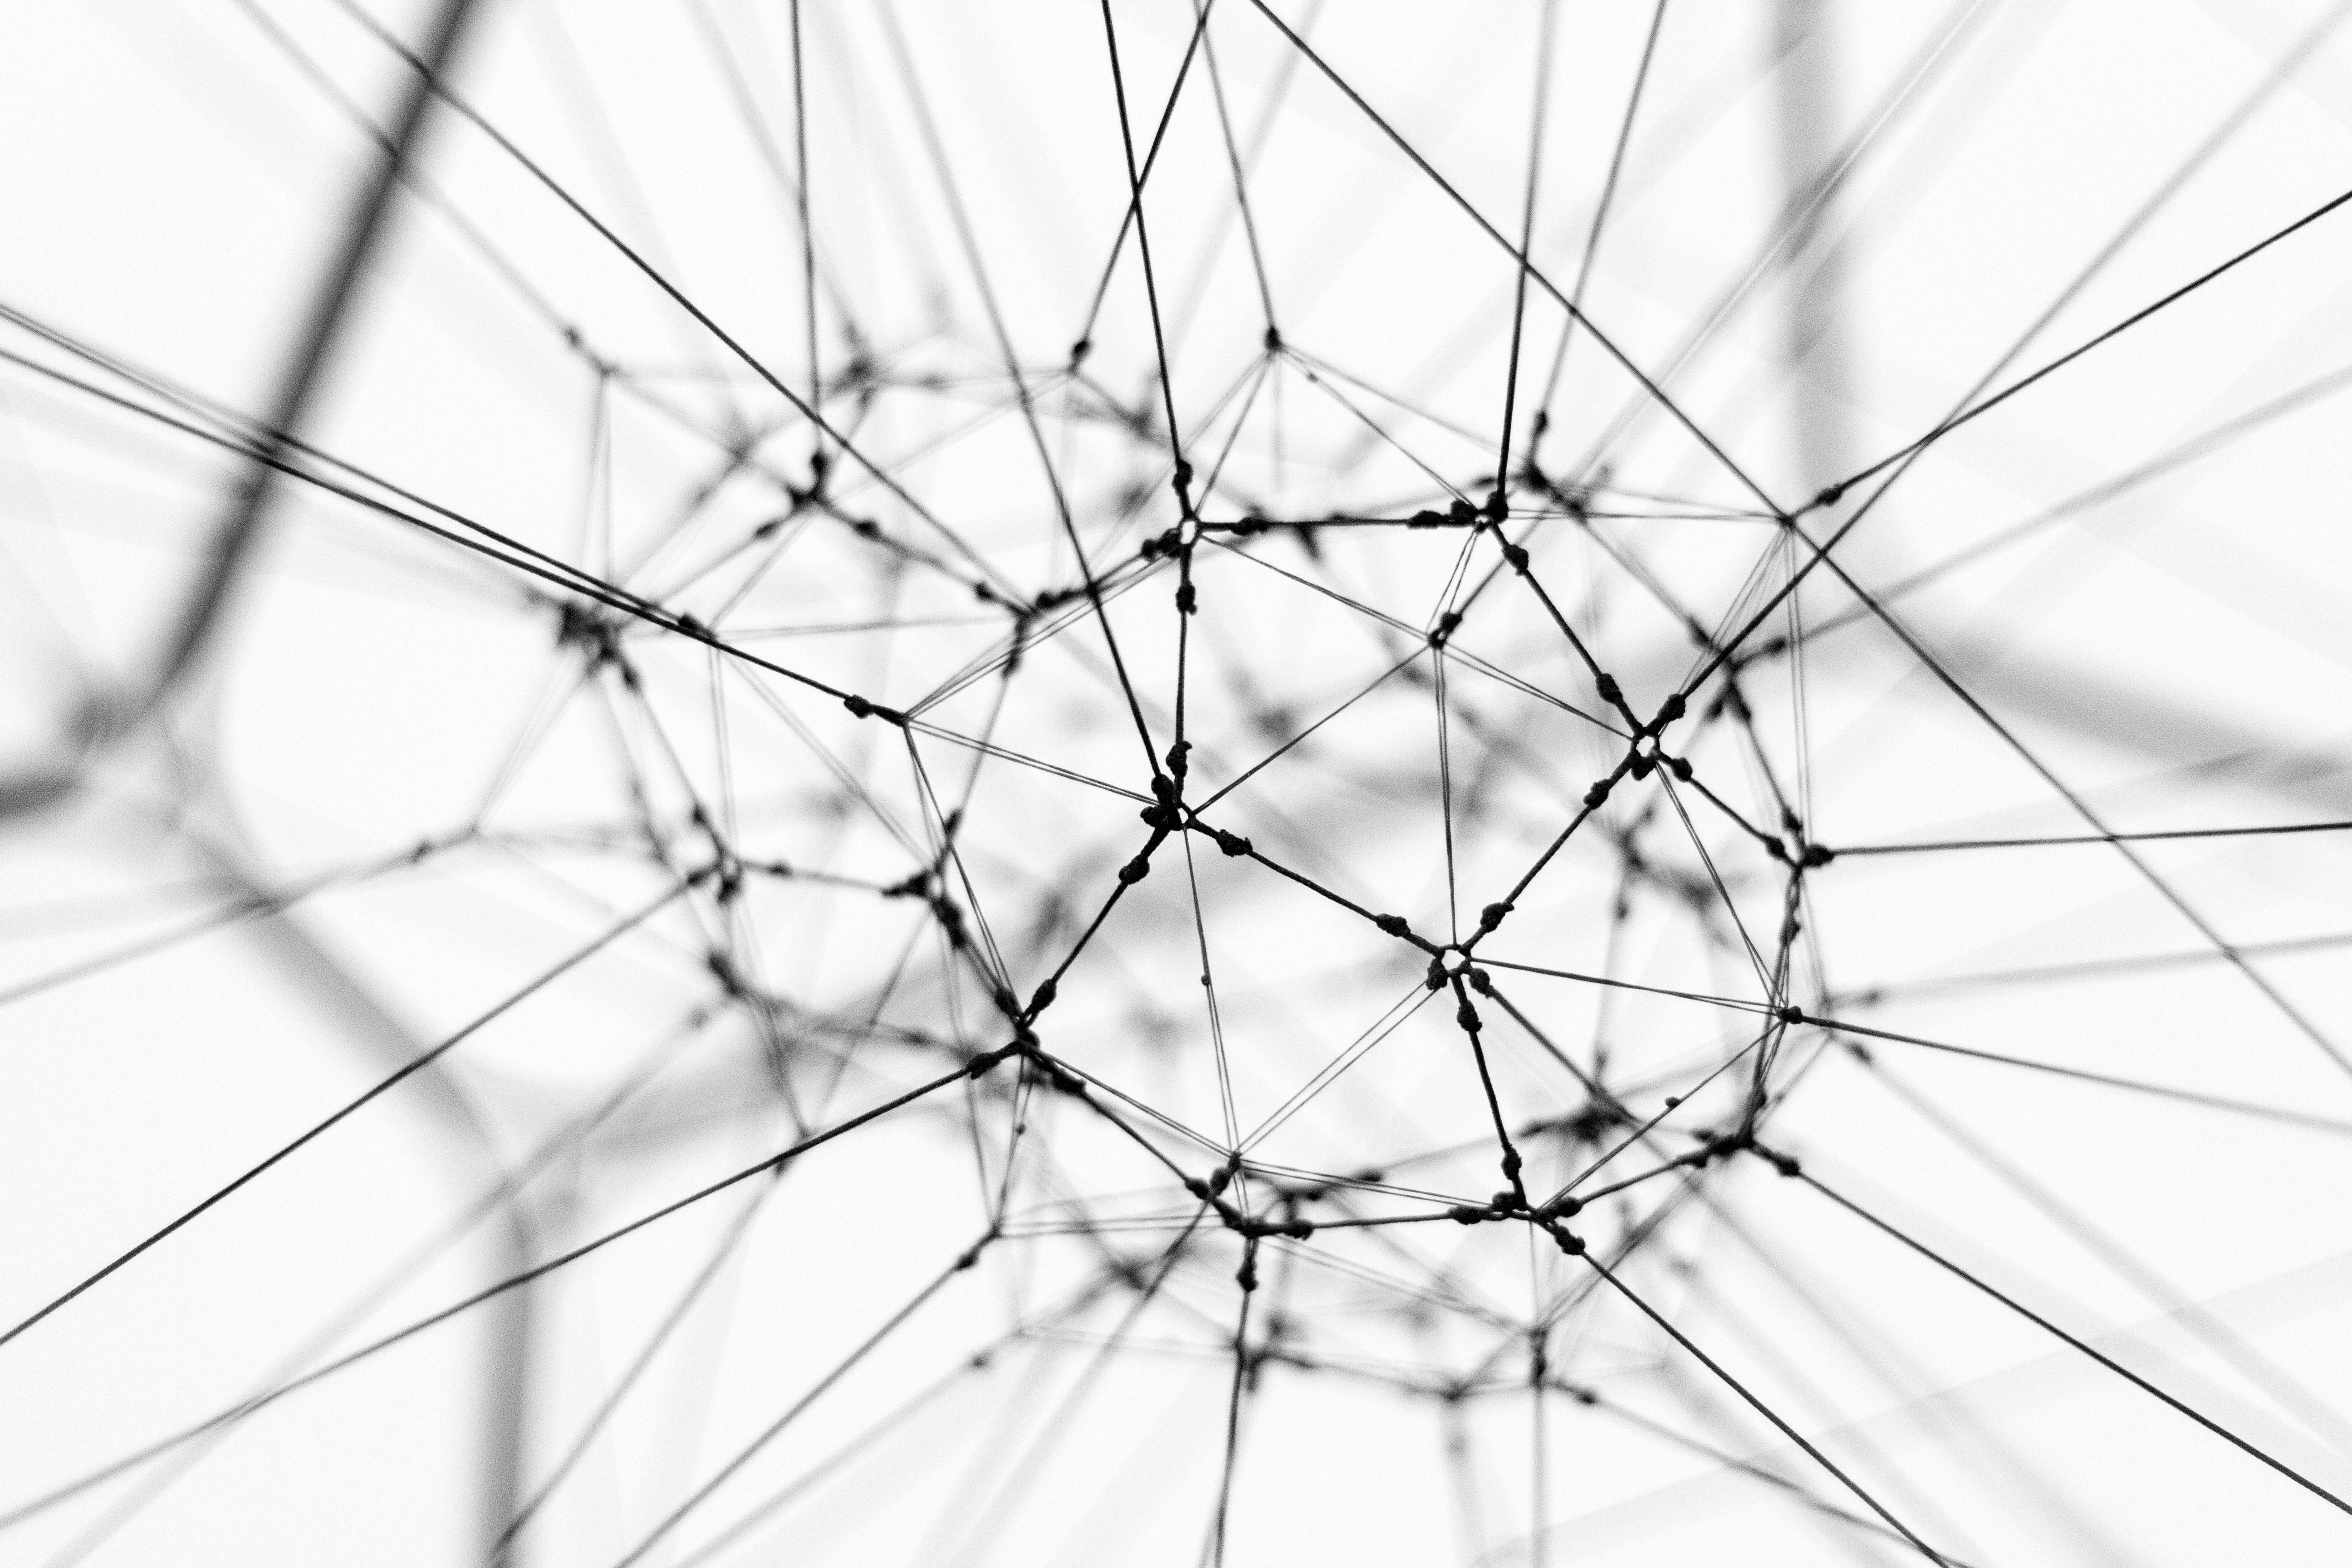 backpropagation deep learning neural networks robots weekly